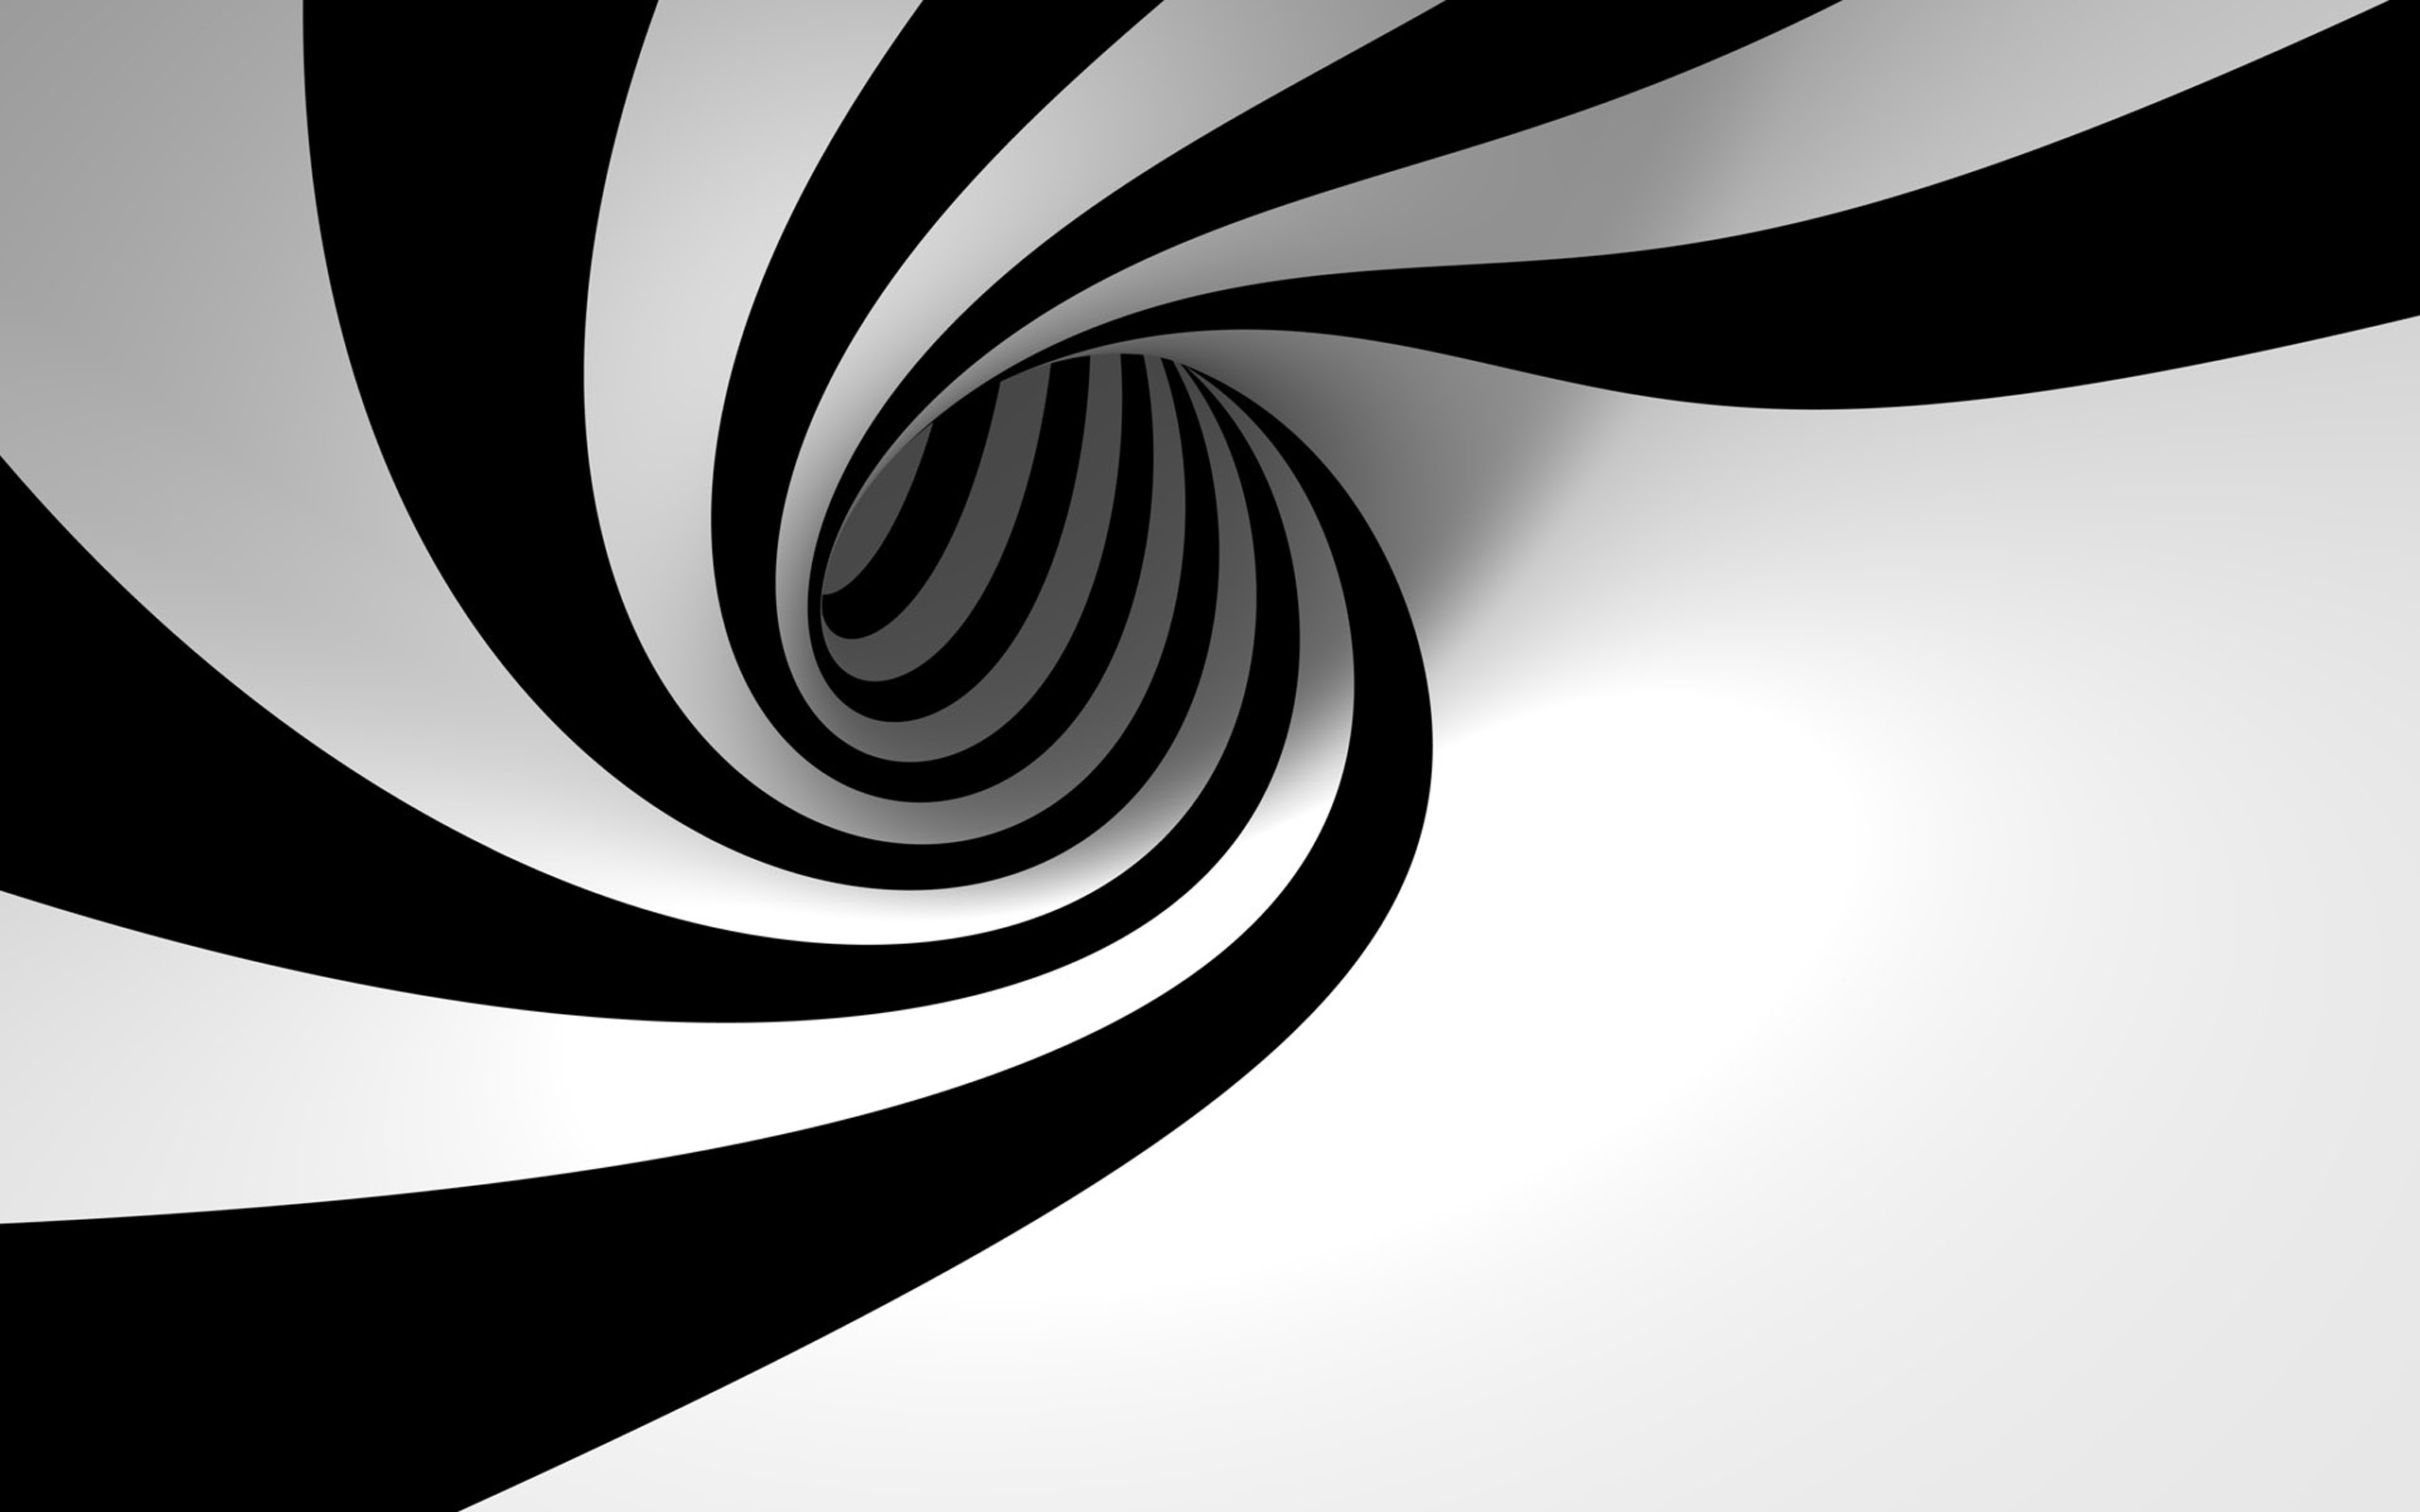 Black and White Abstract Wallpapers - WallpaperSafari